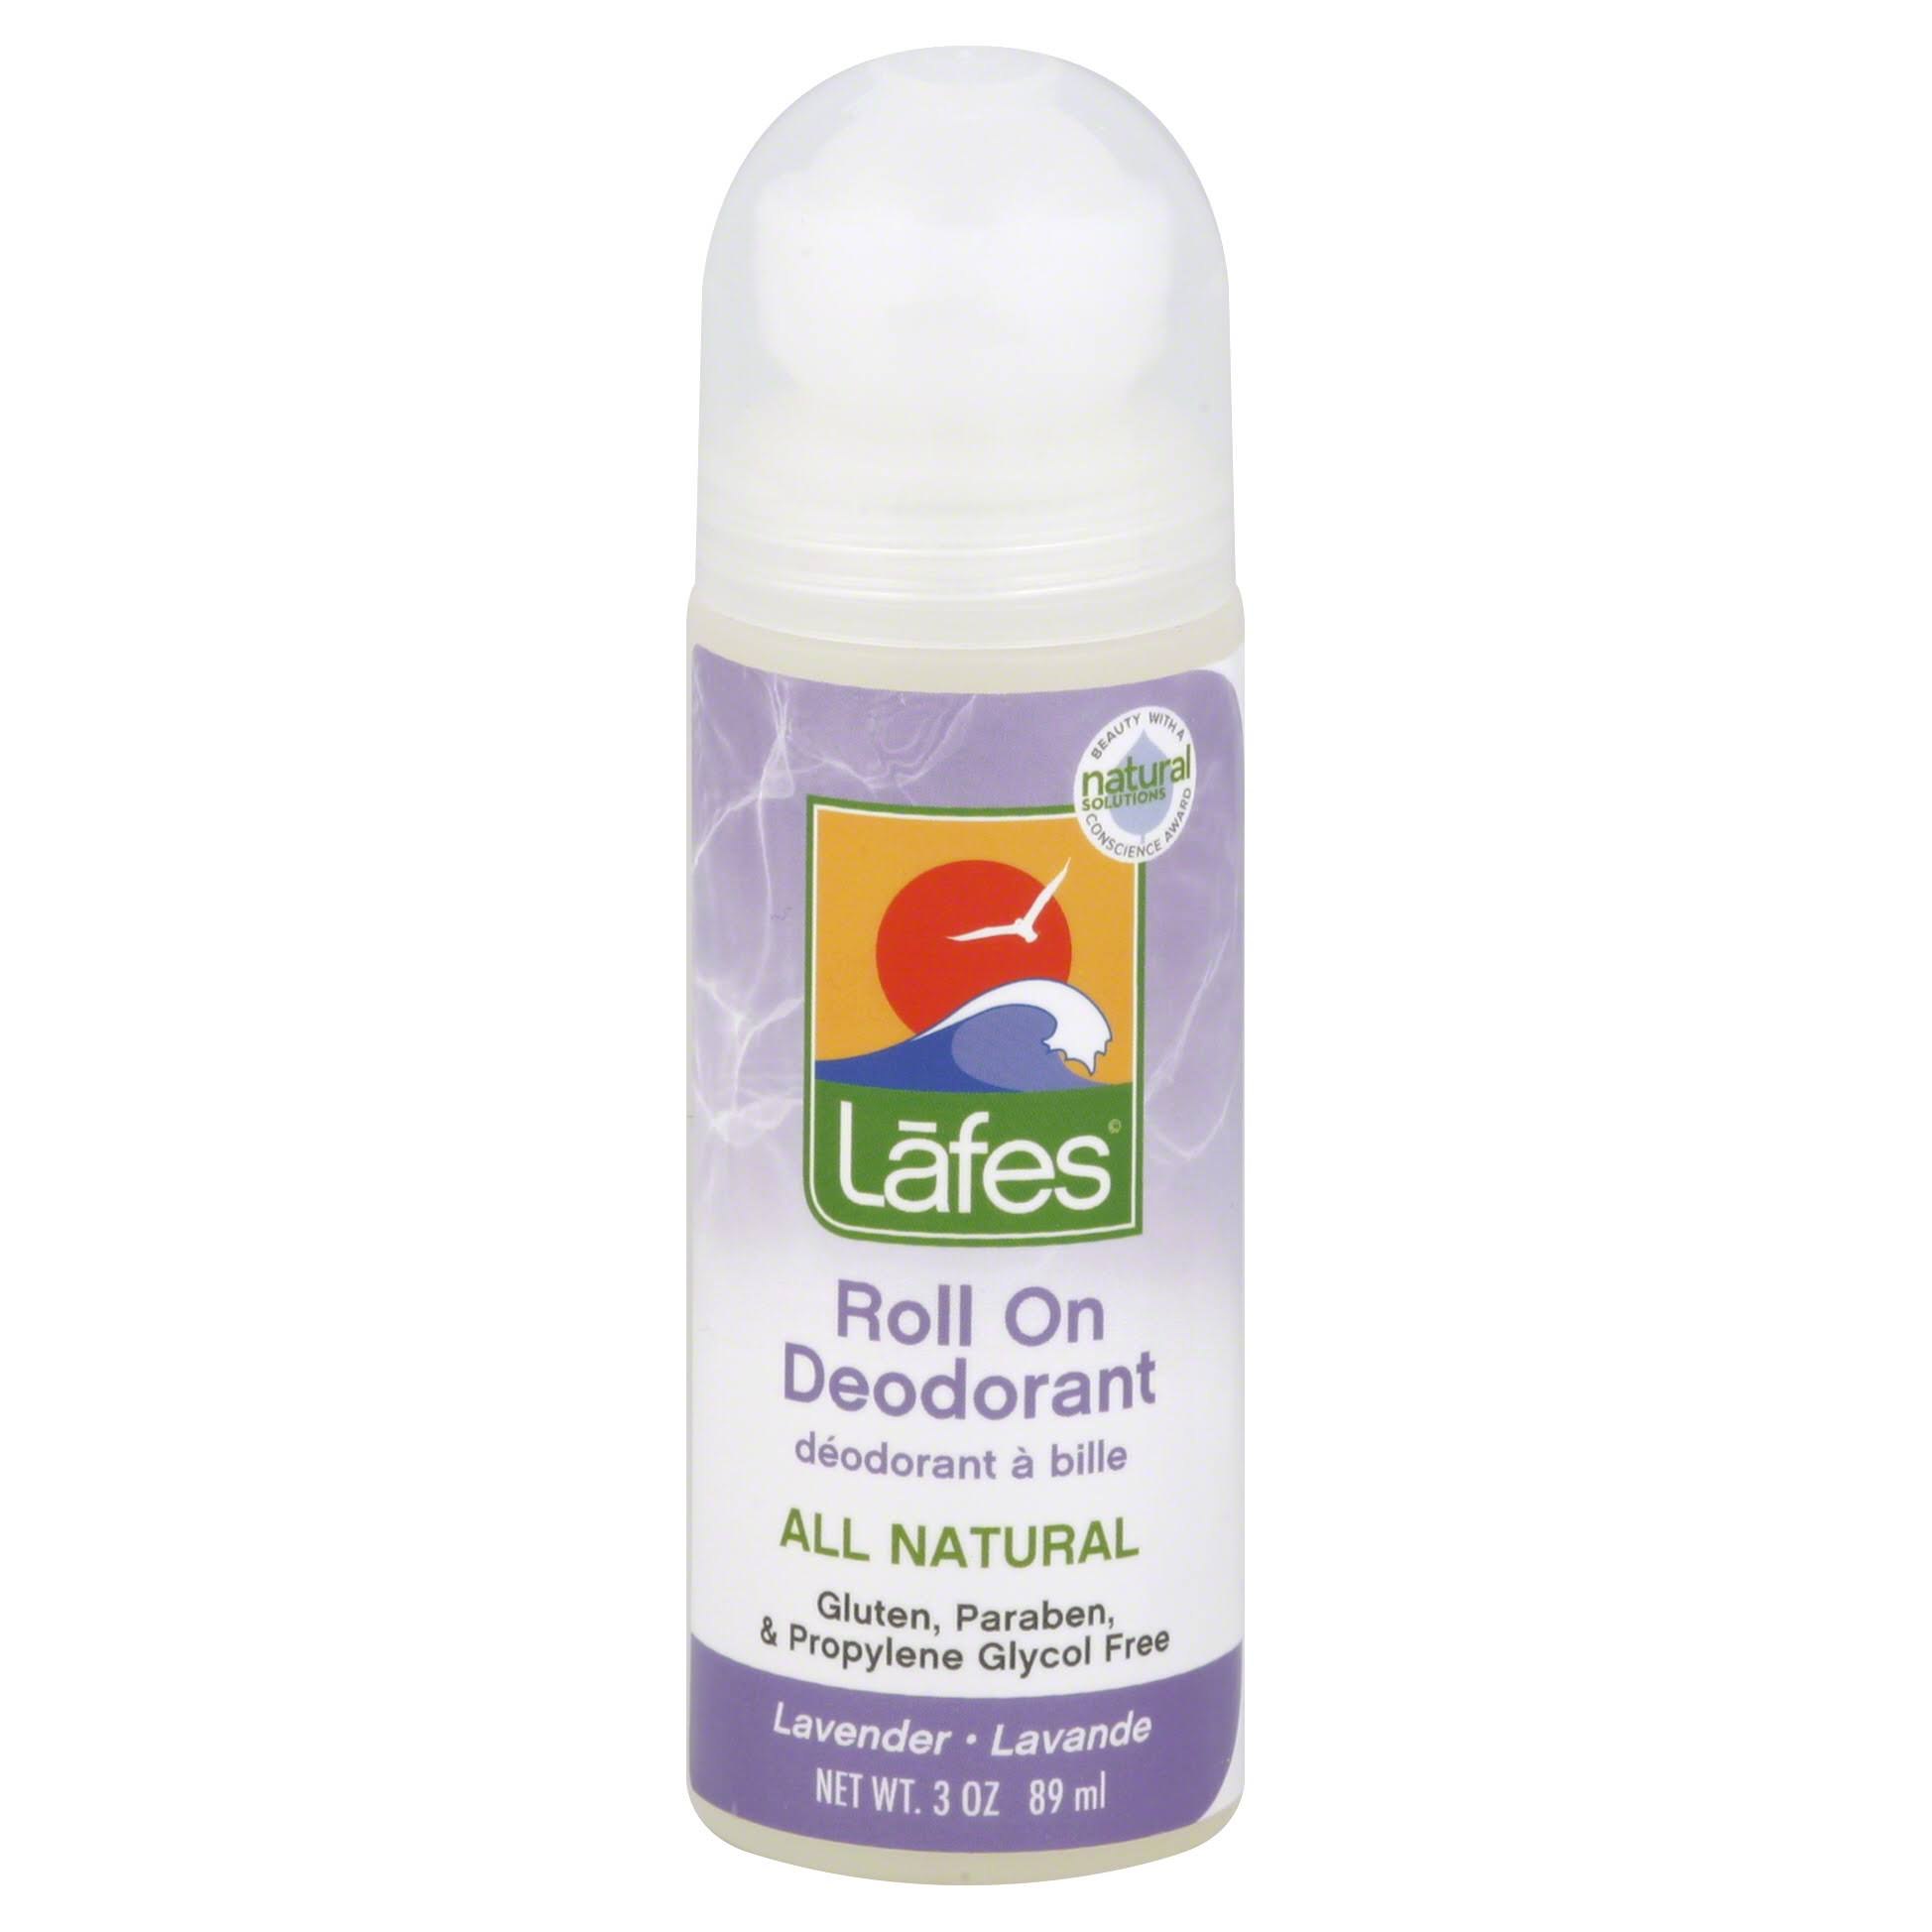 Lafes Natural & Organic Roll On Deodorant - Lavender